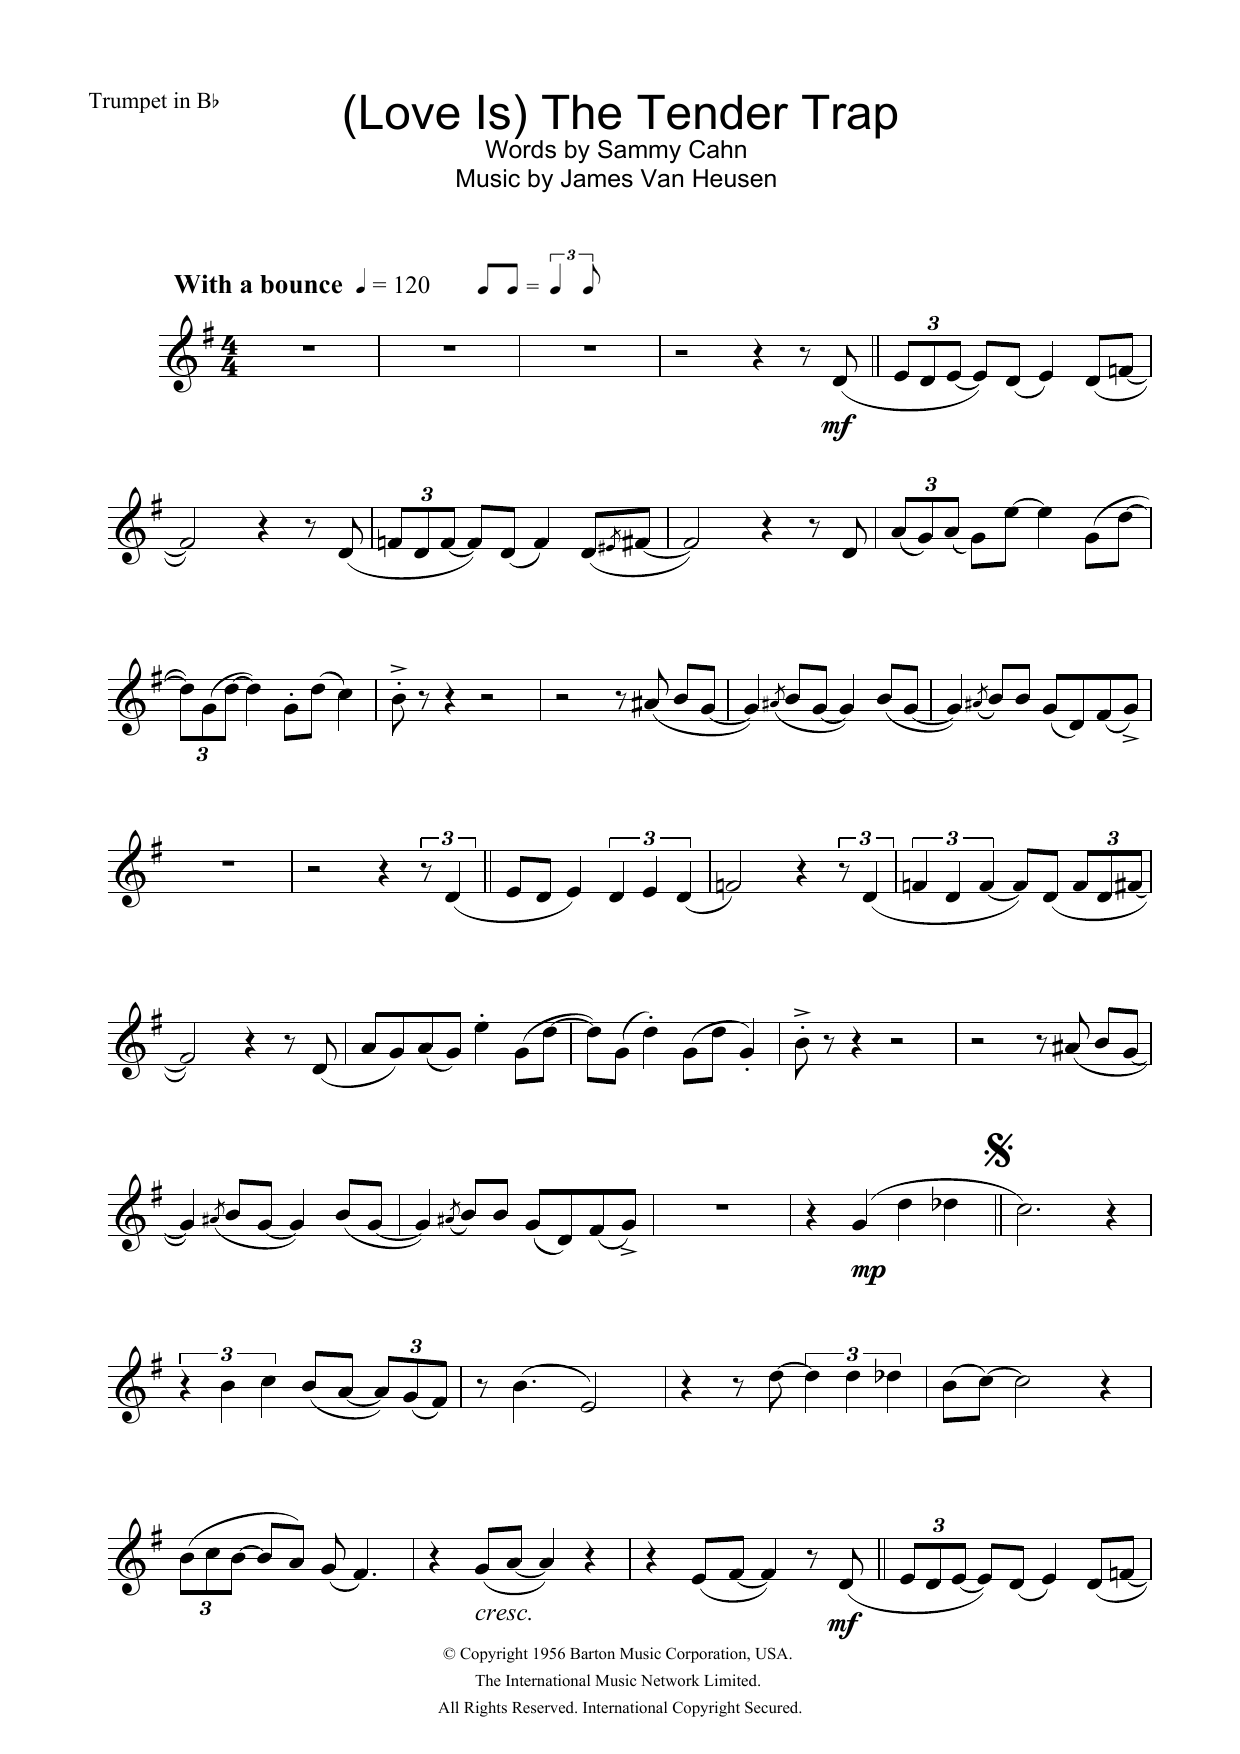 Sheet music digital files to print licensed sammy cahn digital sheet music digital files to print licensed sammy cahn digital sheet music hexwebz Images